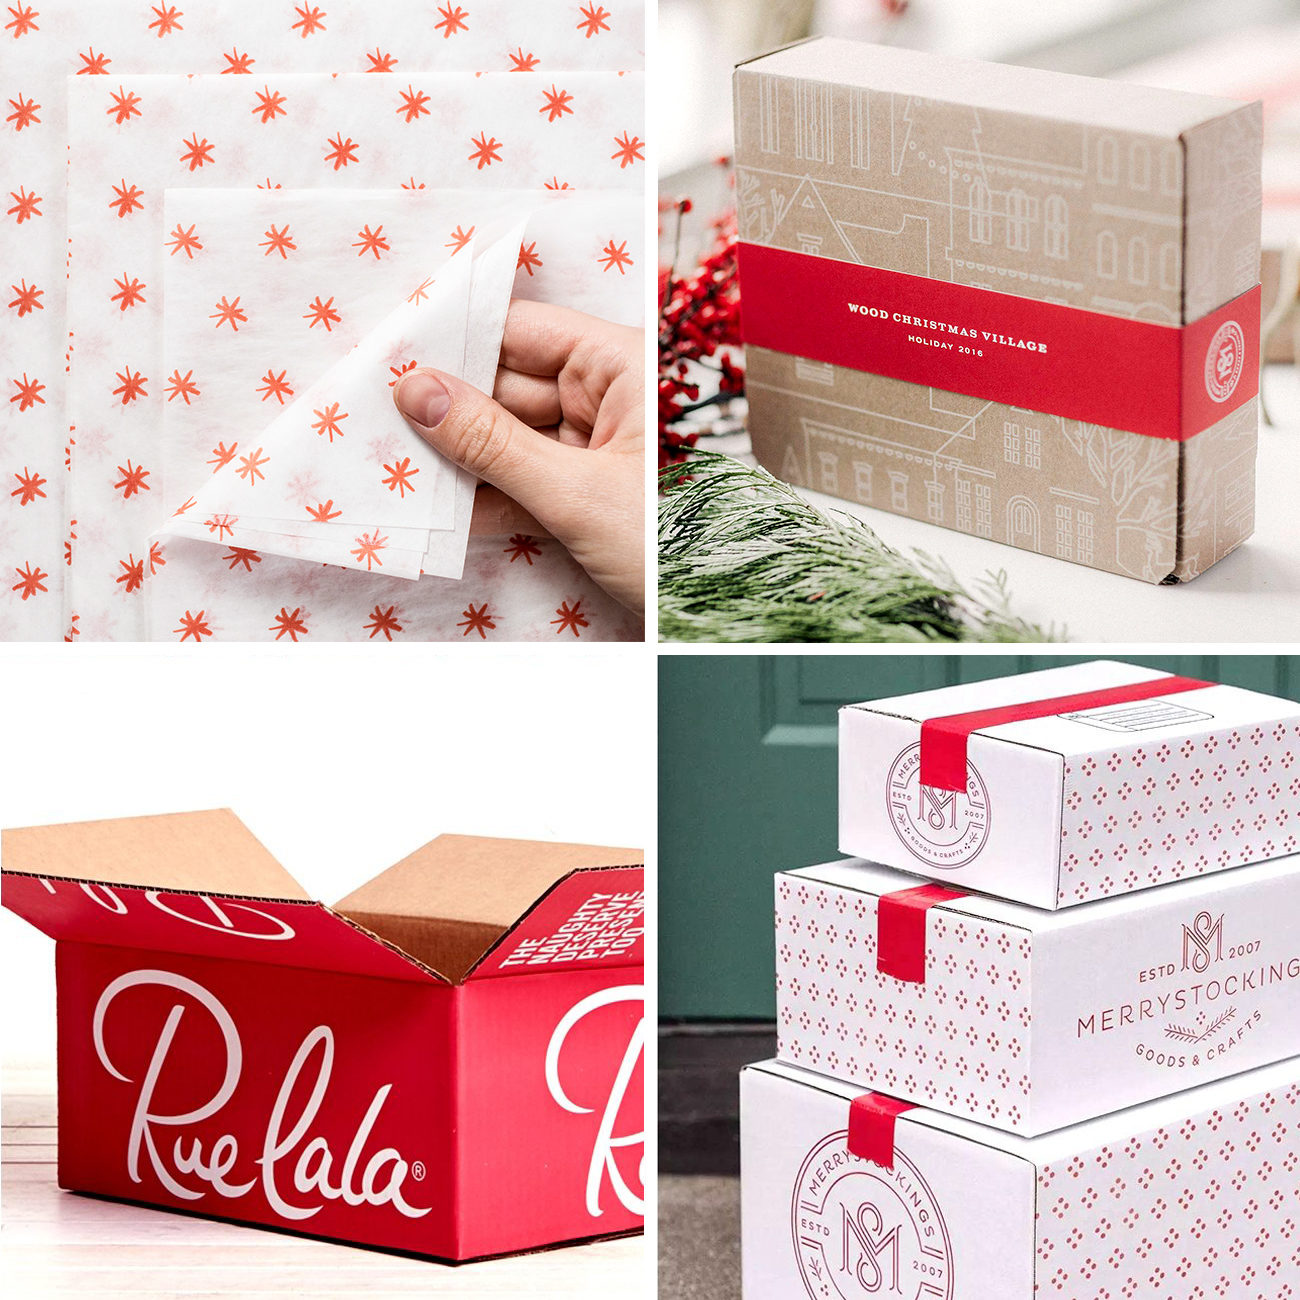 Photos via: Page Three Hundred, Lumi, Studio MLPS, Cassouki 70 Ideas to Spruce Up Your Holiday Packaging Design